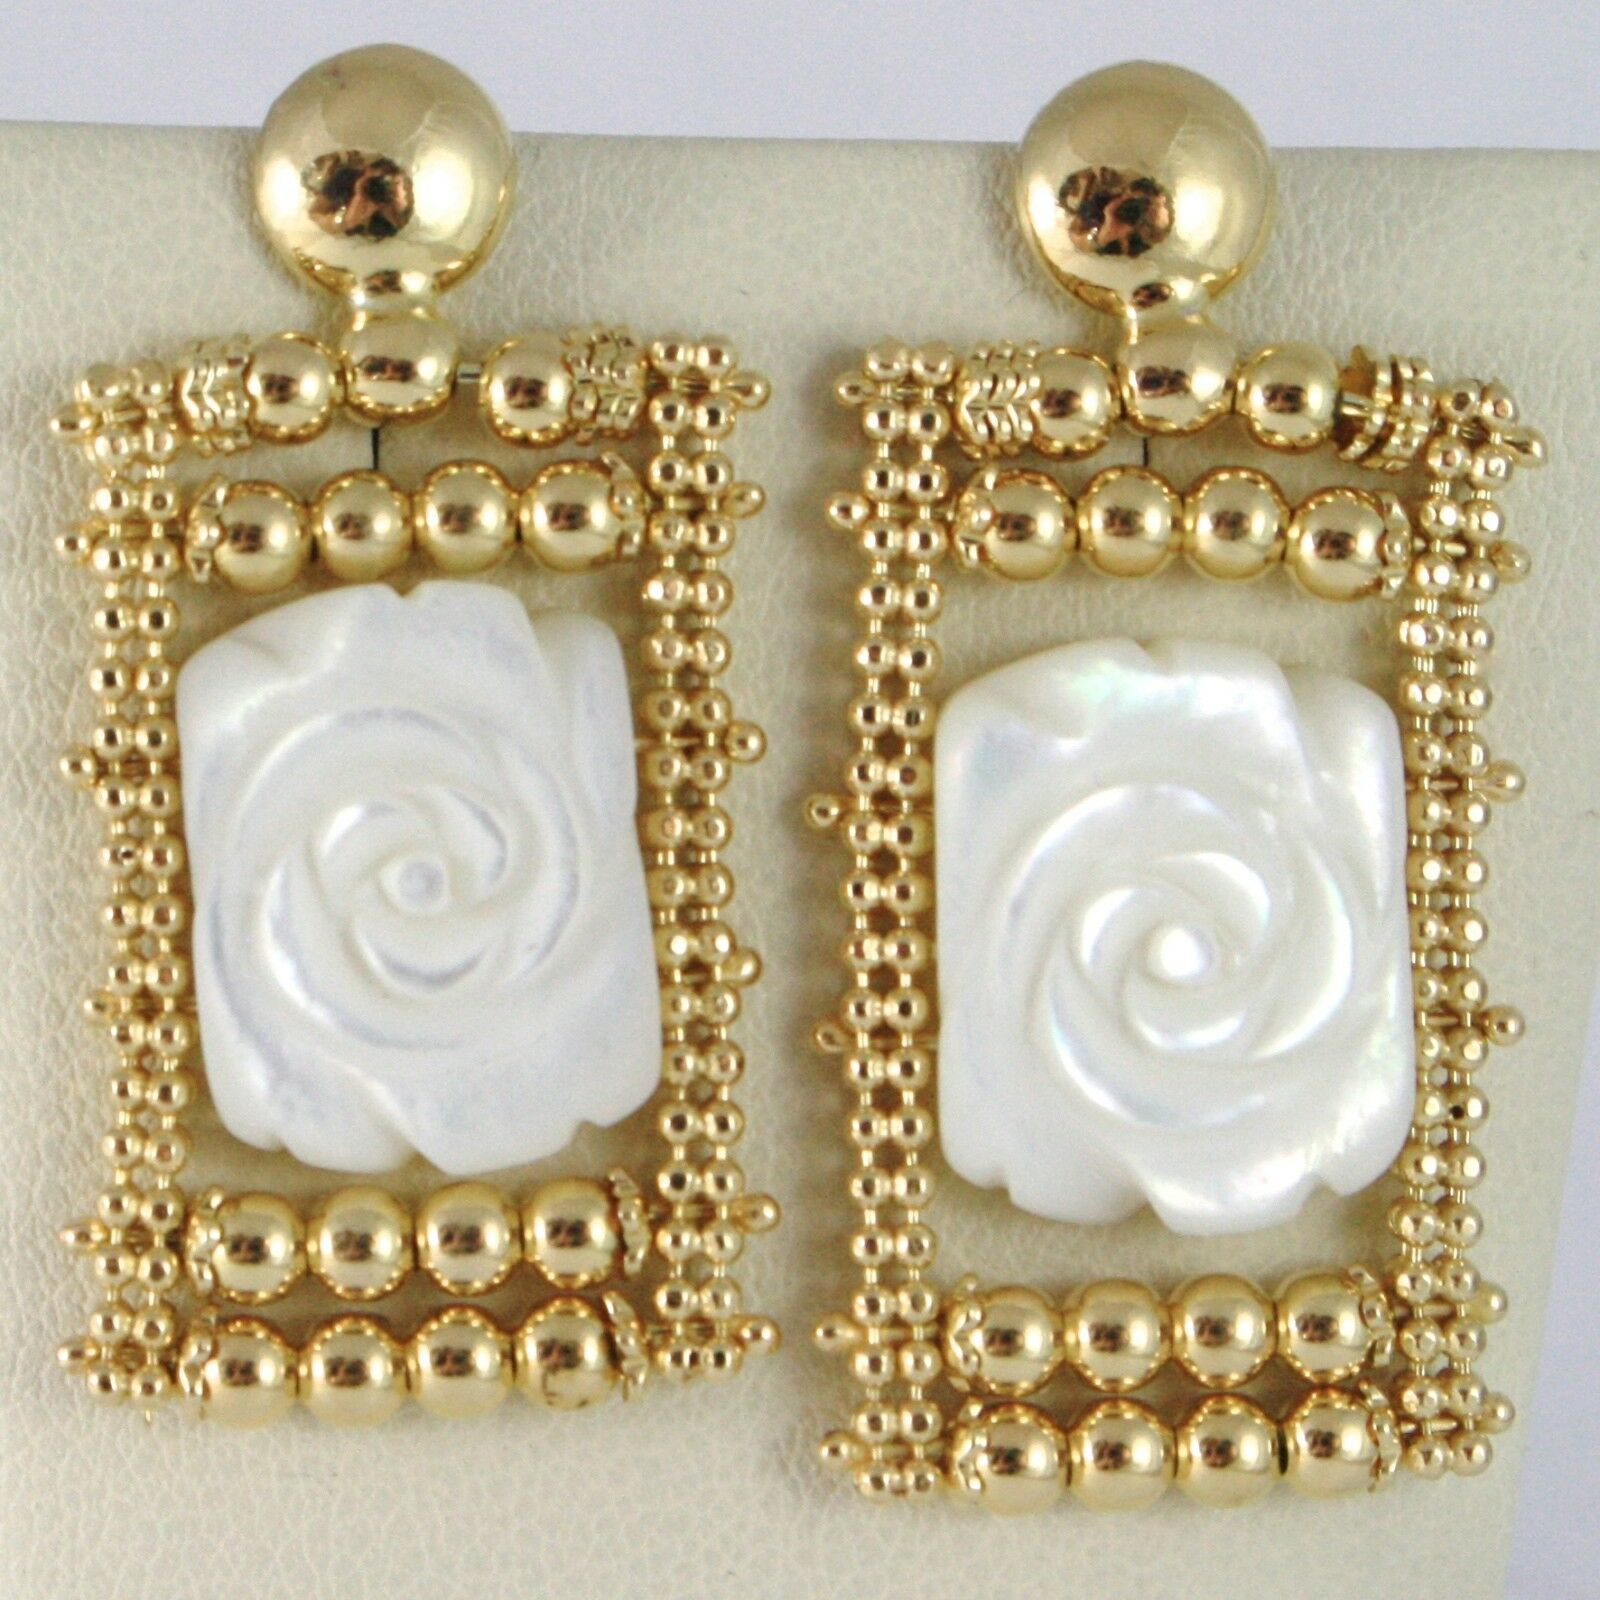 Earrings Silver 925 Yellow Gold Plated Pendants, Multi Strand Mop Pearl Flower